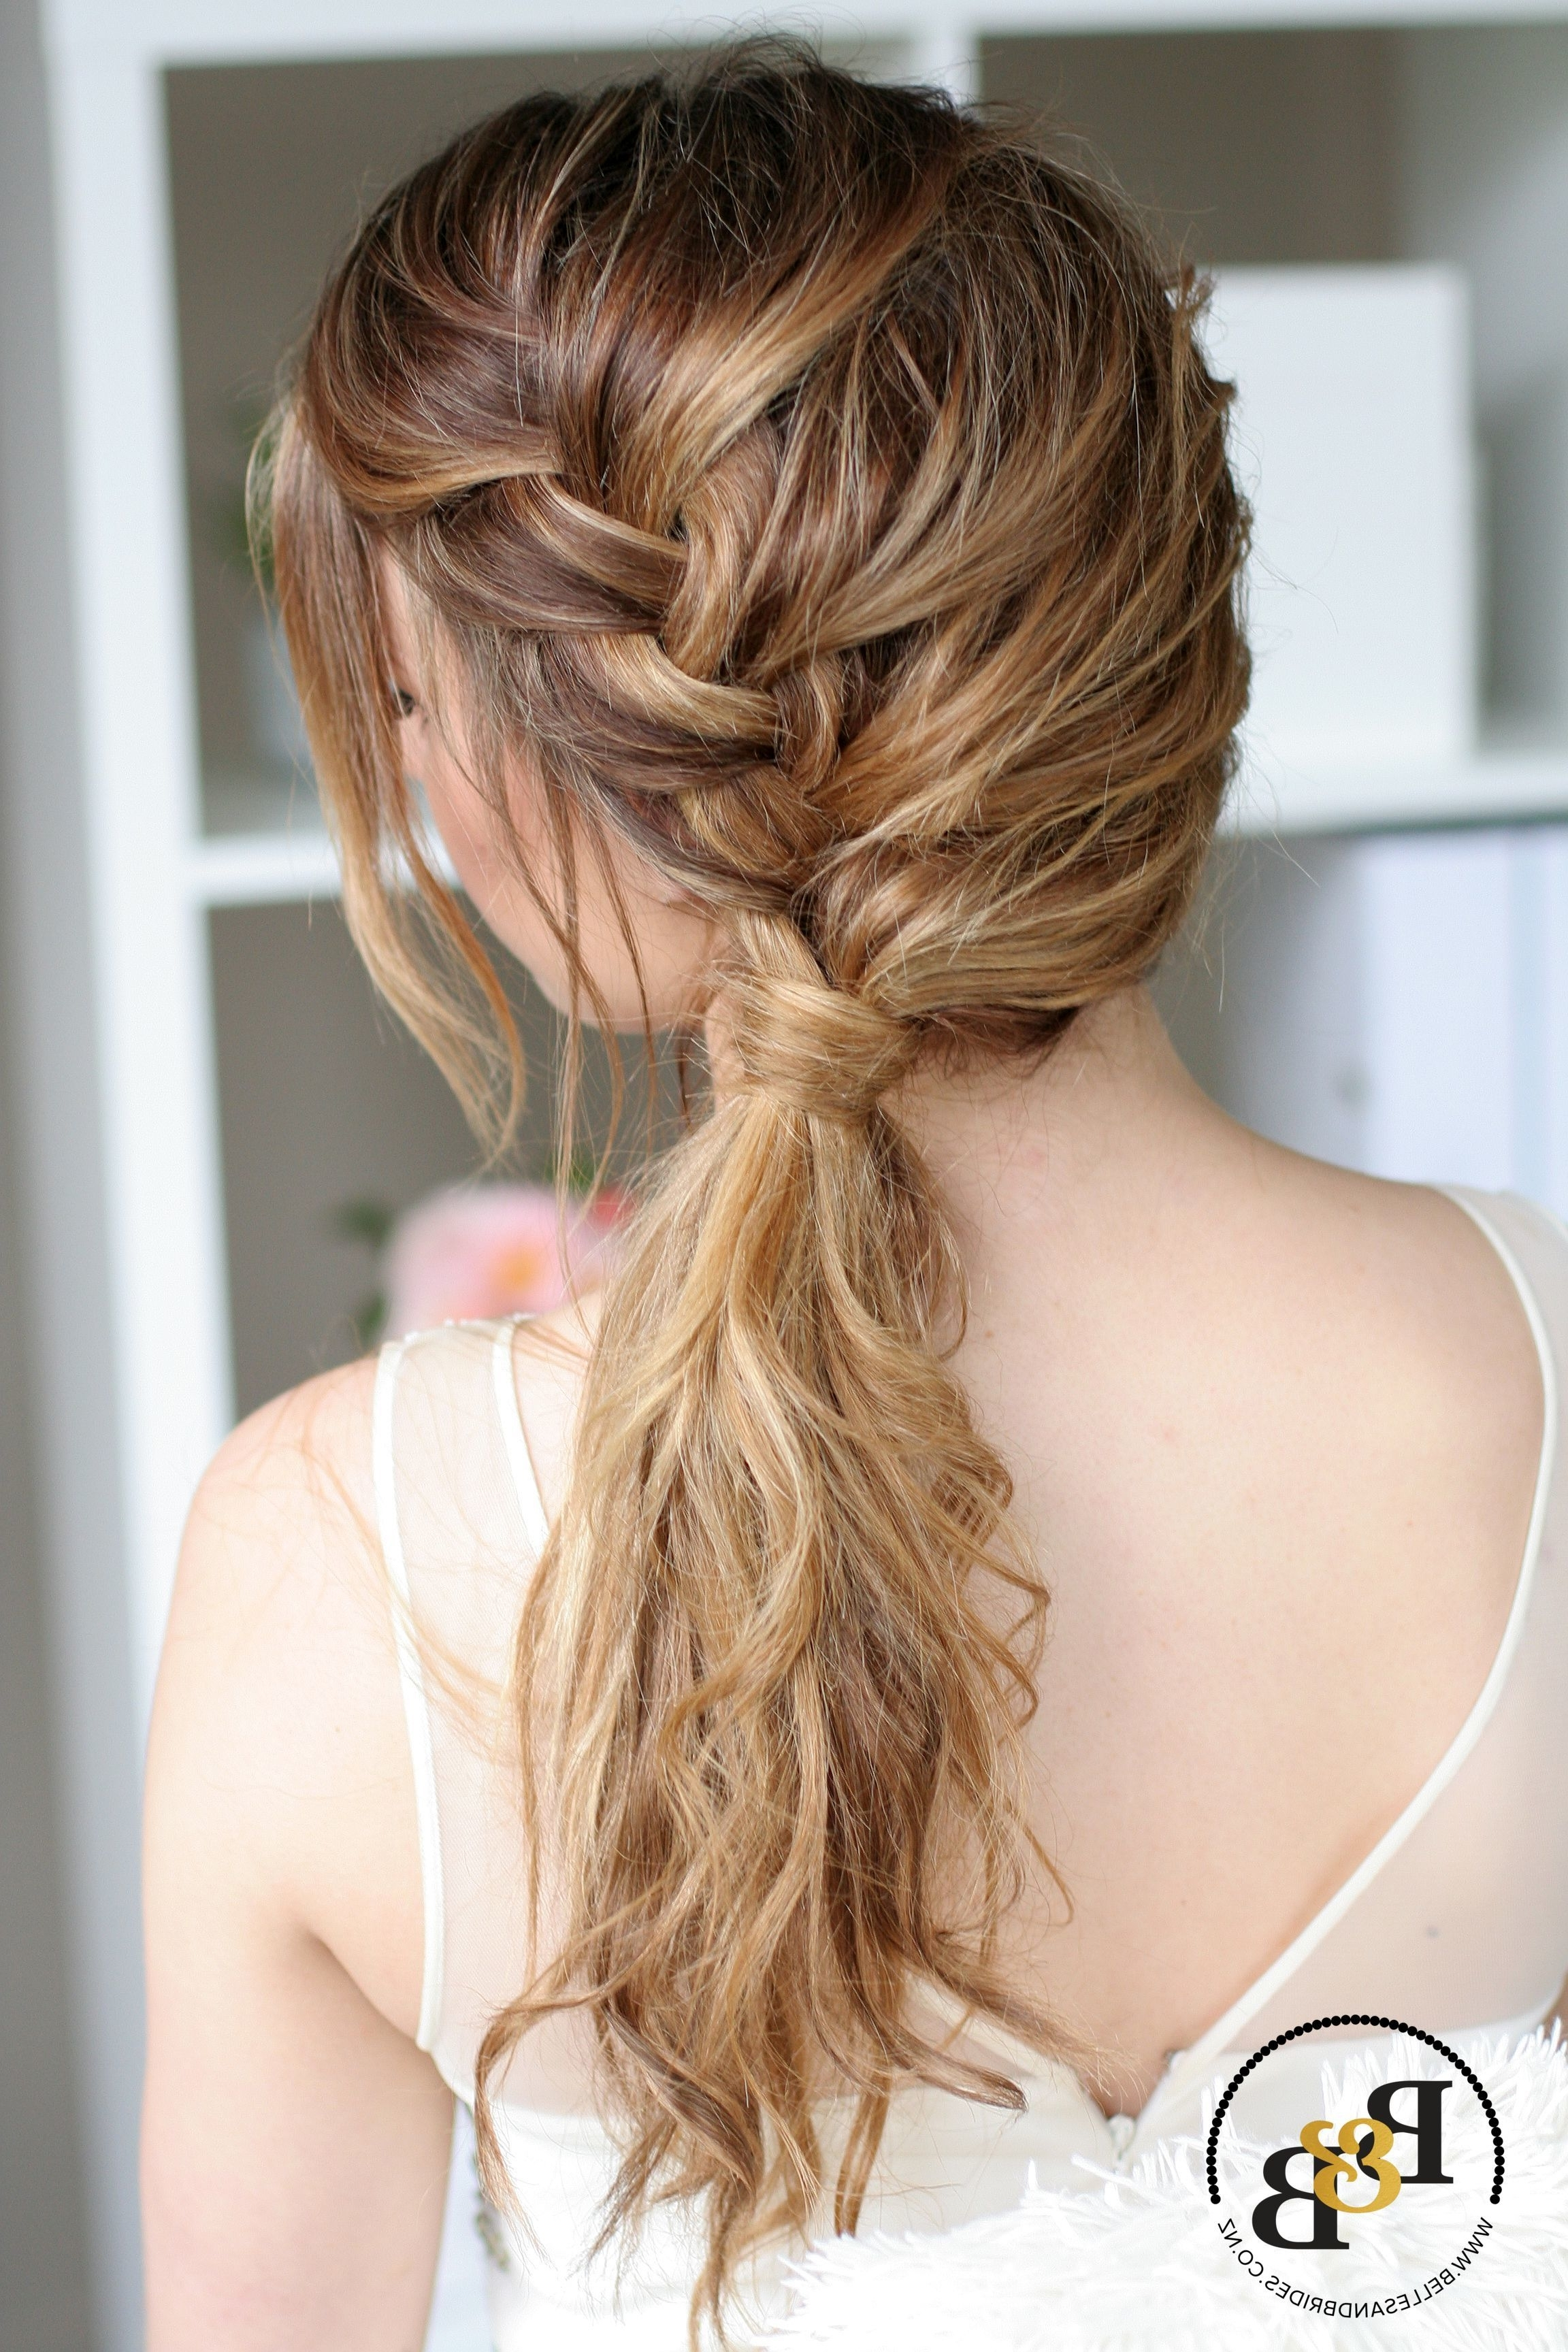 Wedding Hair Down With Braid #bridesmaidhairwithbraid Regarding Most Up To Date Wedding Hairstyles With Braids For Bridesmaids (View 4 of 15)